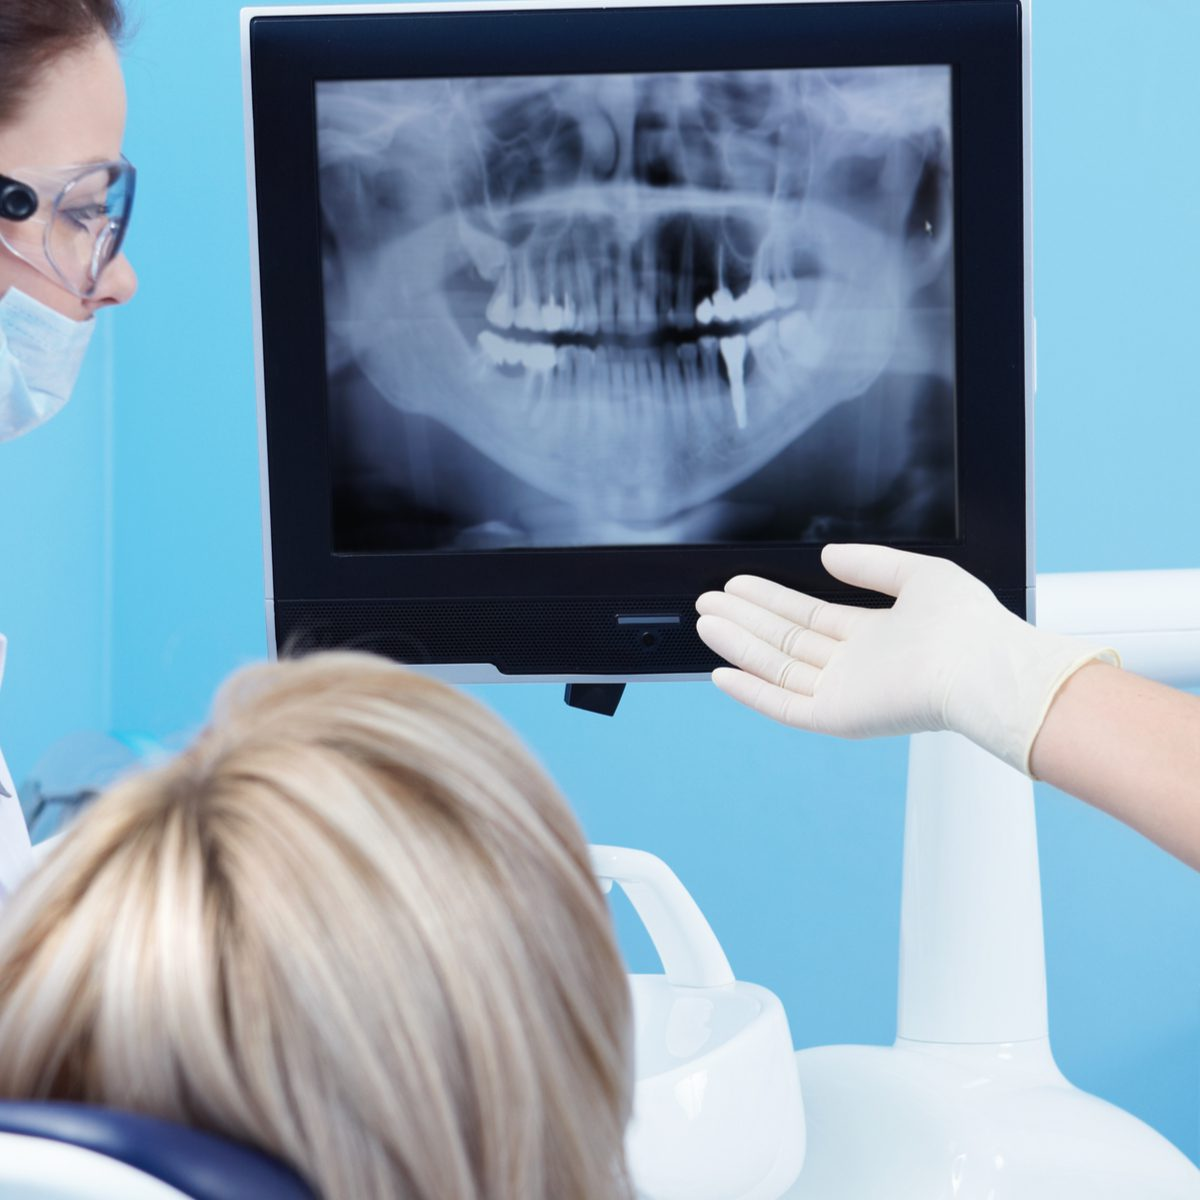 dentist looking on x-ray